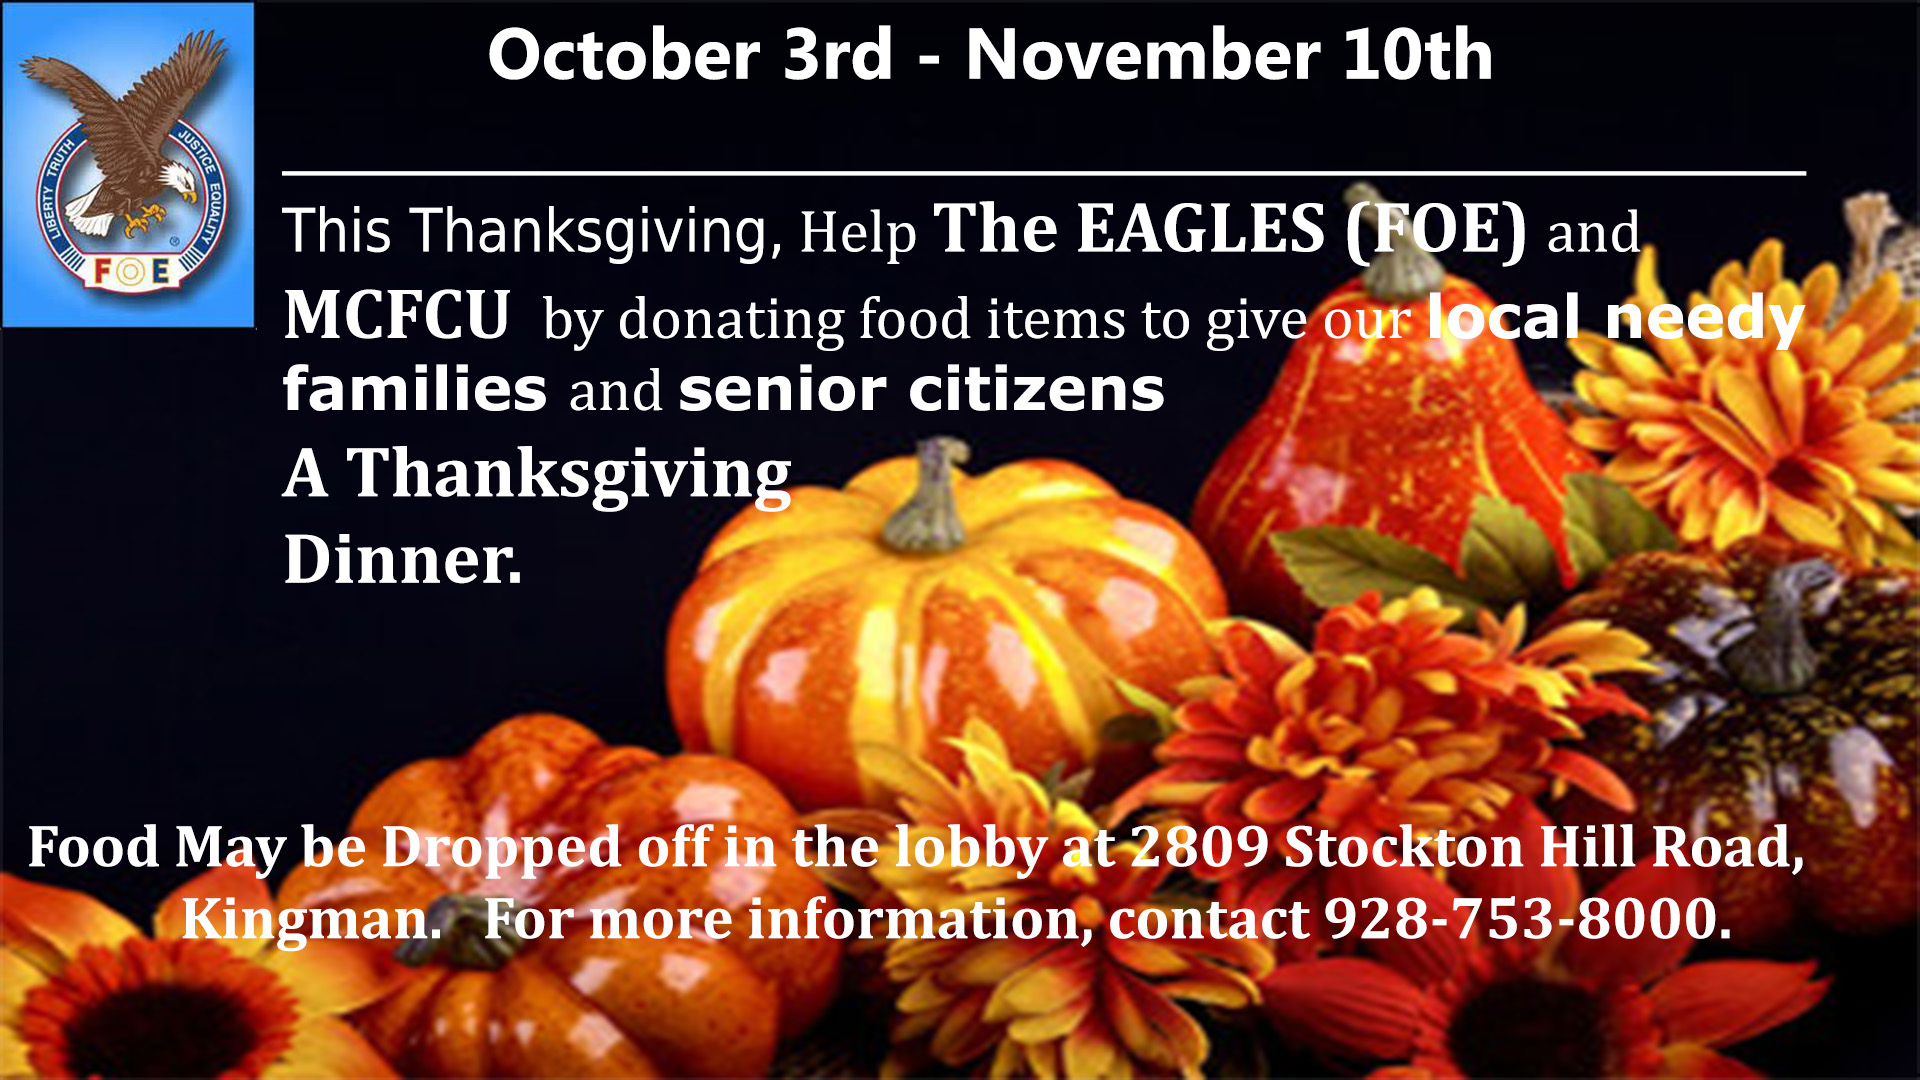 eagles-food-donations